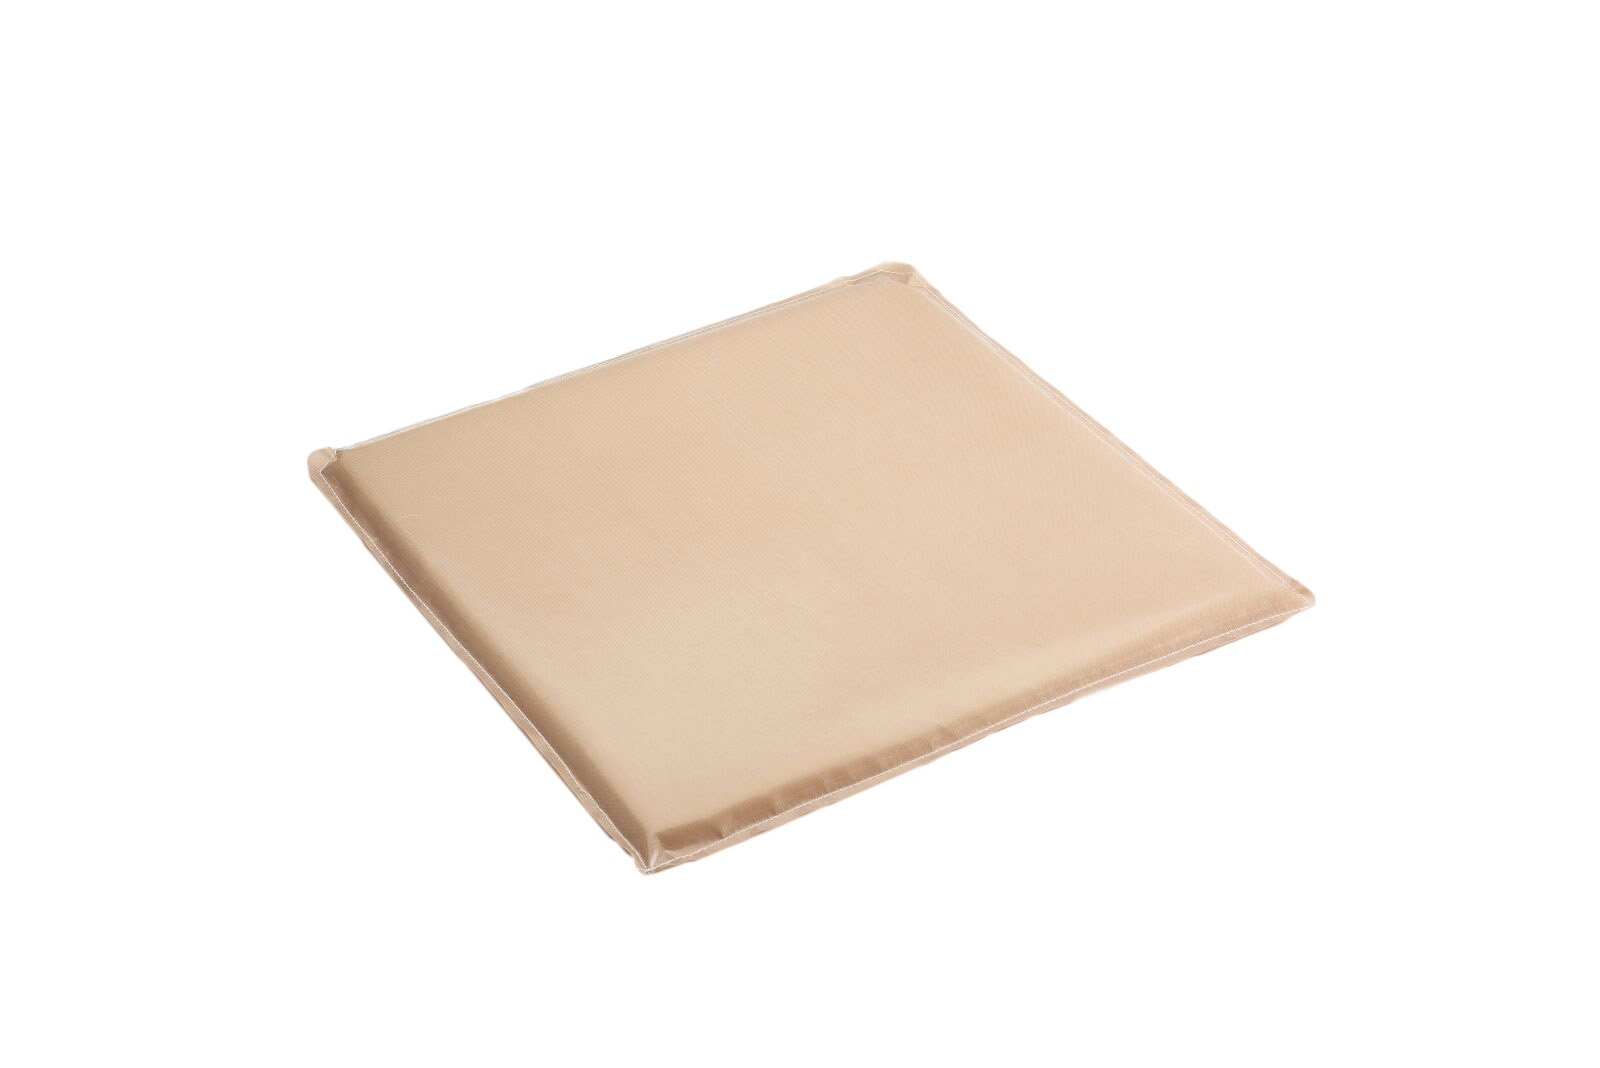 15'' x 15'' x 3/4'' Heat Press Pillow by Essentialware with 3/4'' High Temp memory foam